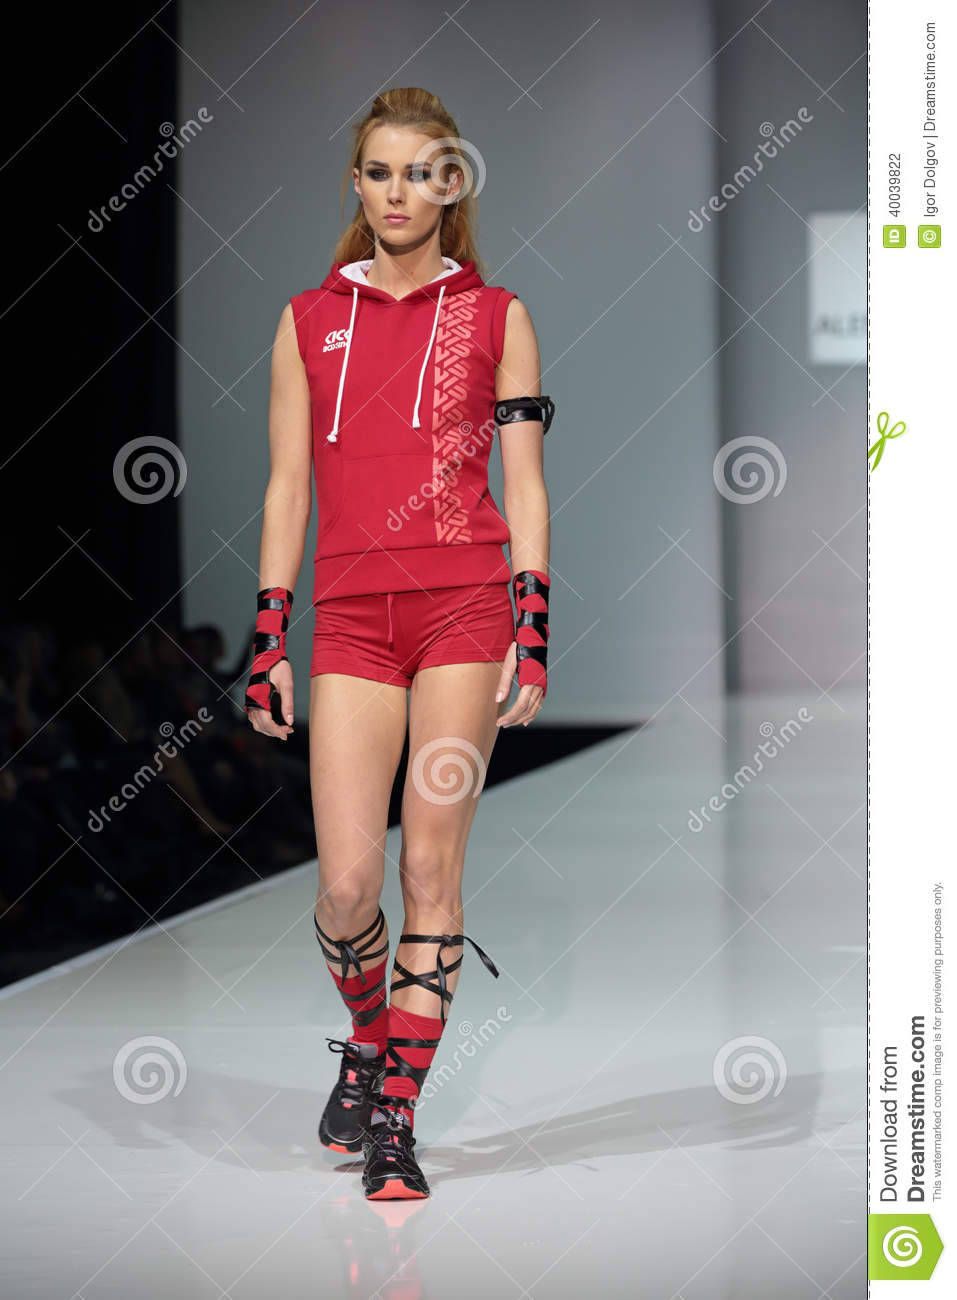 Moscow Fashion Week Editorial Photography Image 40039822